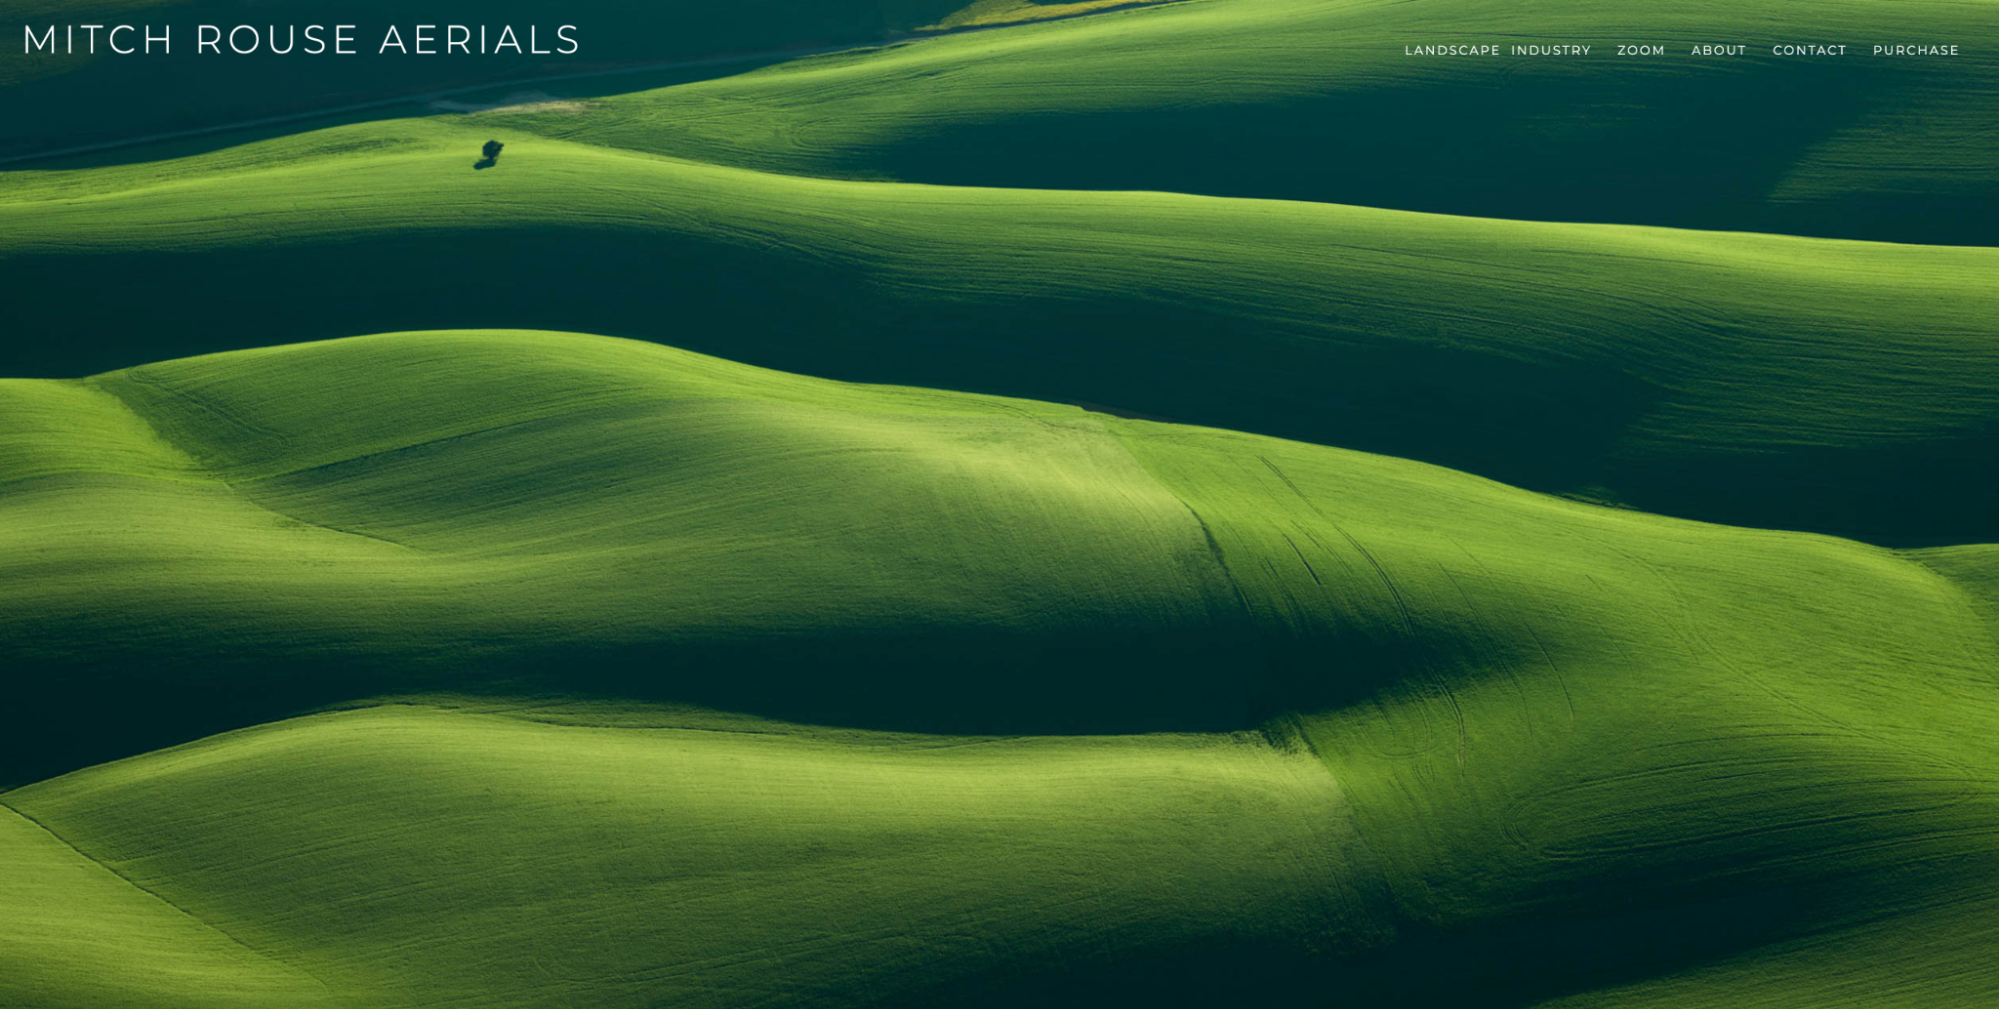 Aerial and stock photography online portfolio.